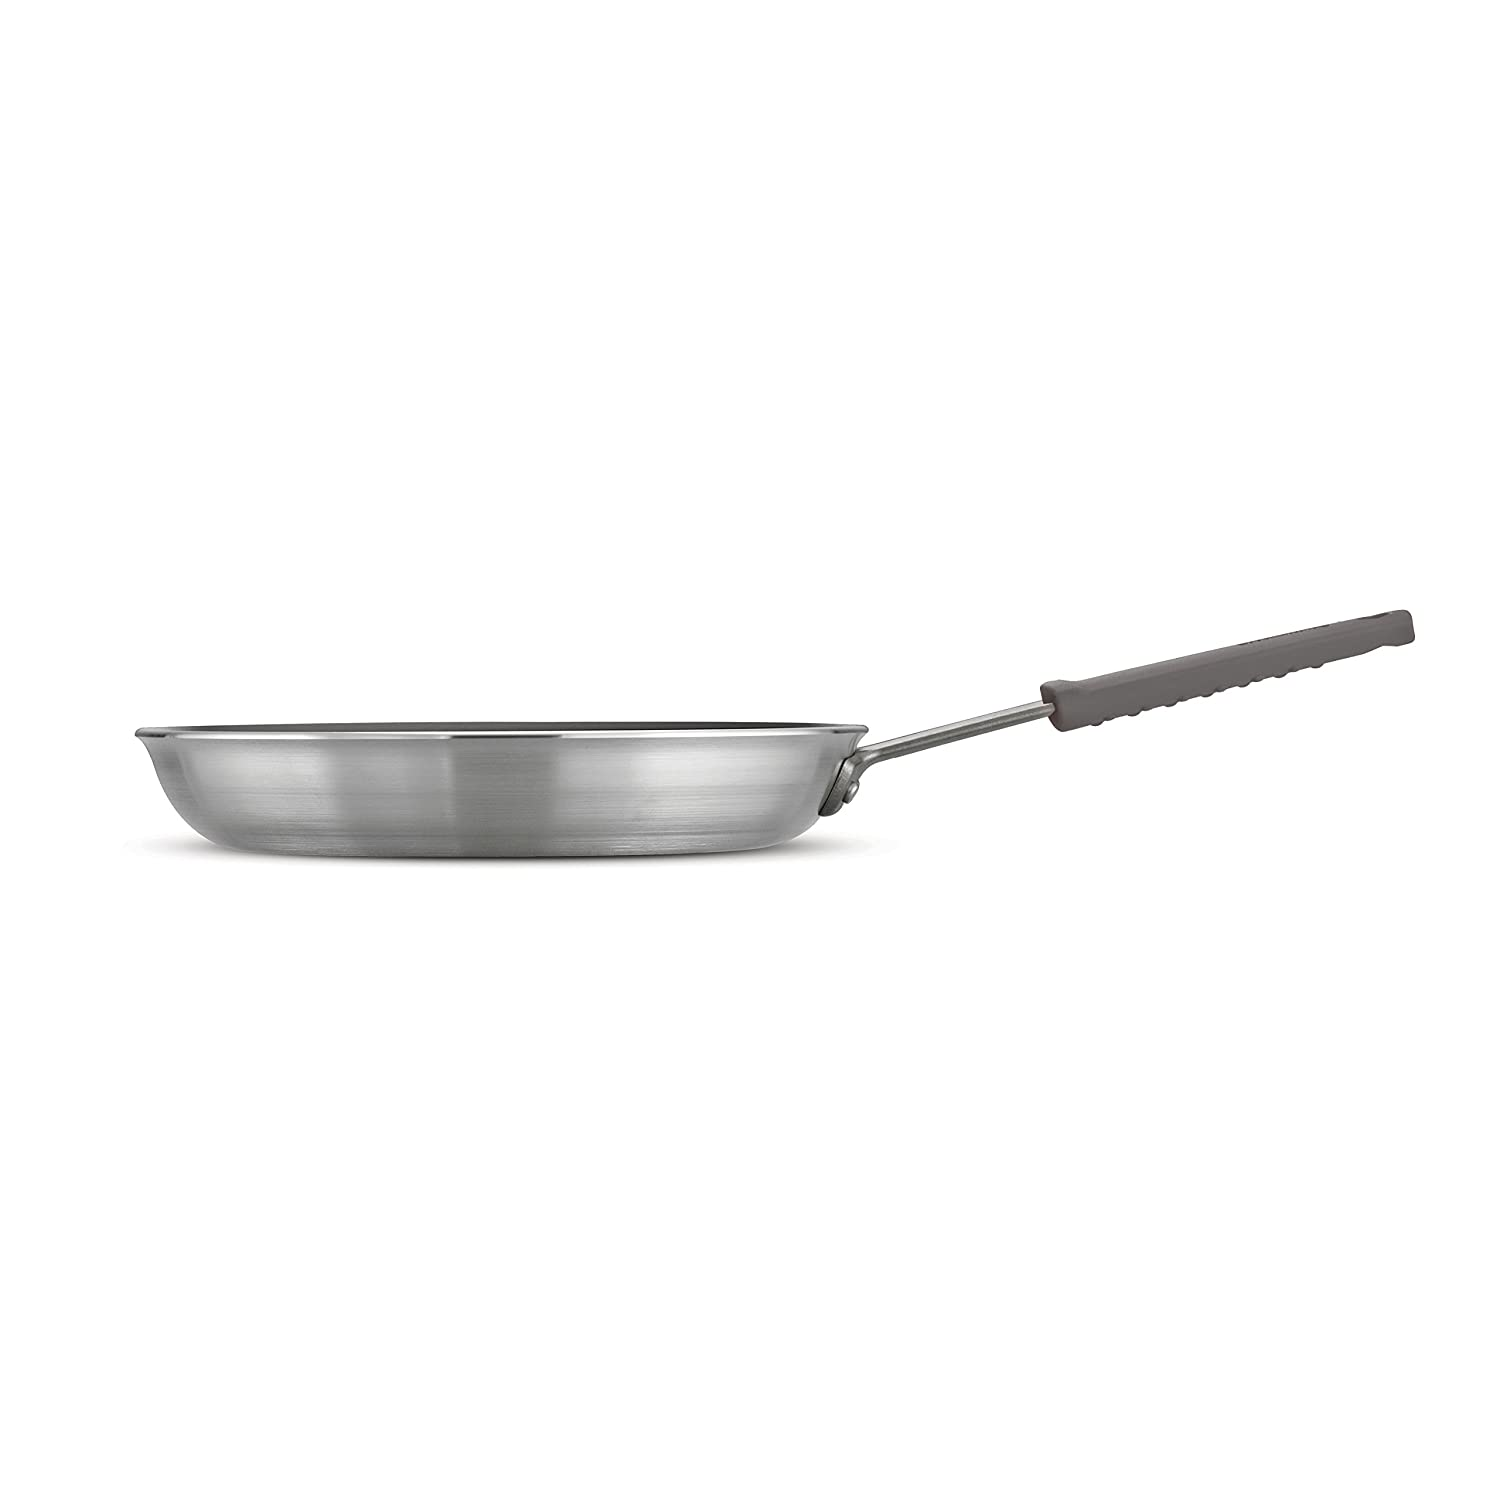 Amazon.com: Tramontina 80114/517DS Professional Fusion Fry Pan, 12-Inch, Satin Finish, Made in USA: Kitchen & Dining